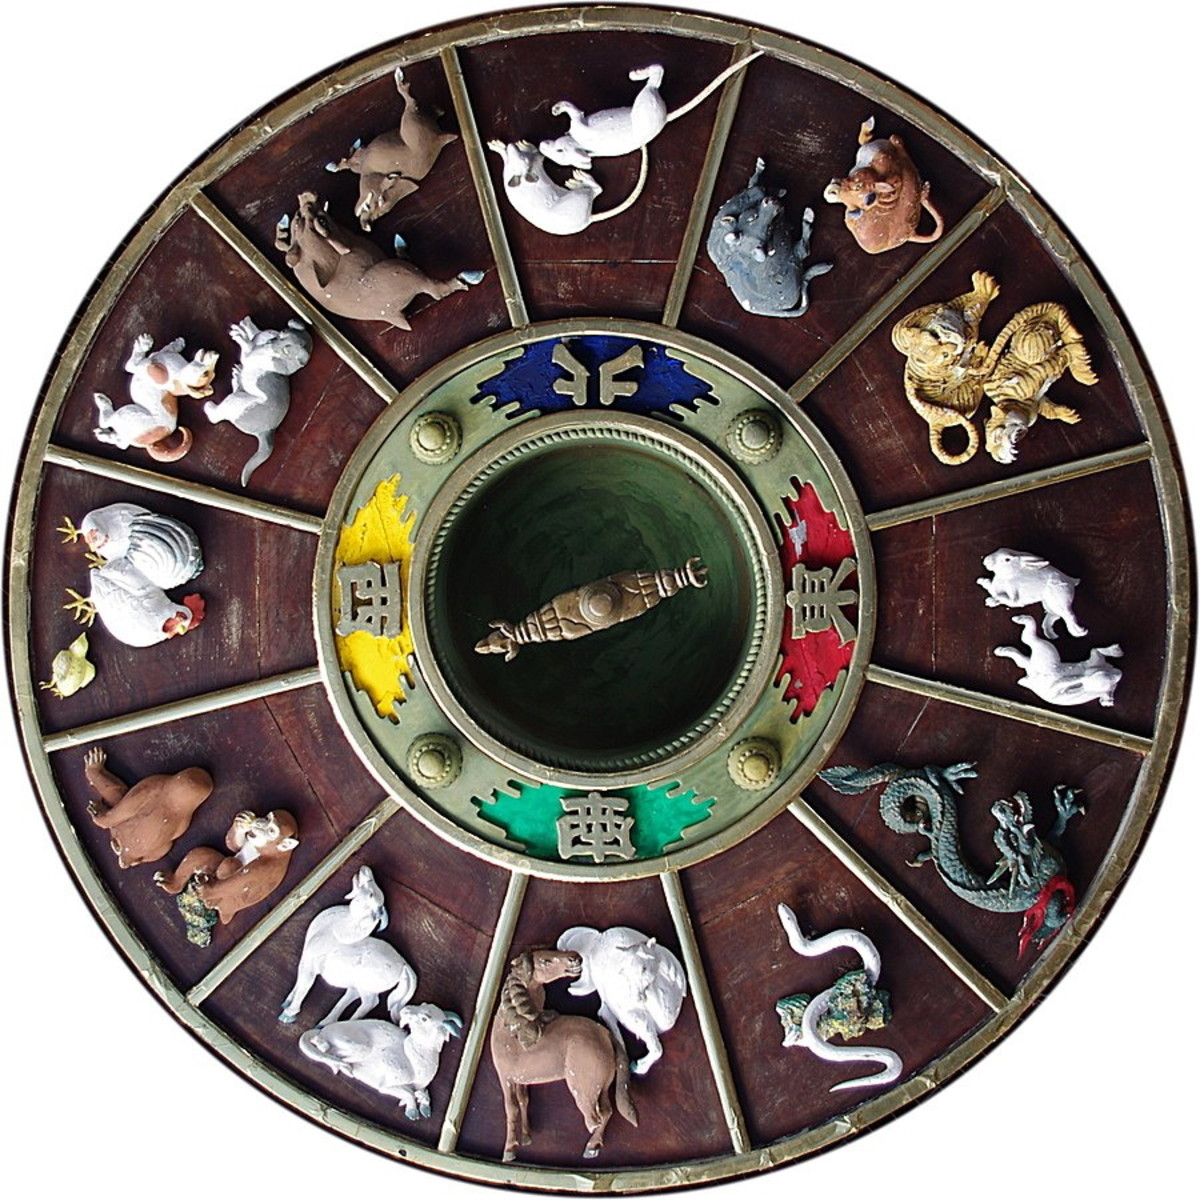 The Chinese Zodiac comprises a different animal representing different types of animal life energy for 12 years. Then each animal varies in slight ways, so in total there are 60 different types of life energy.